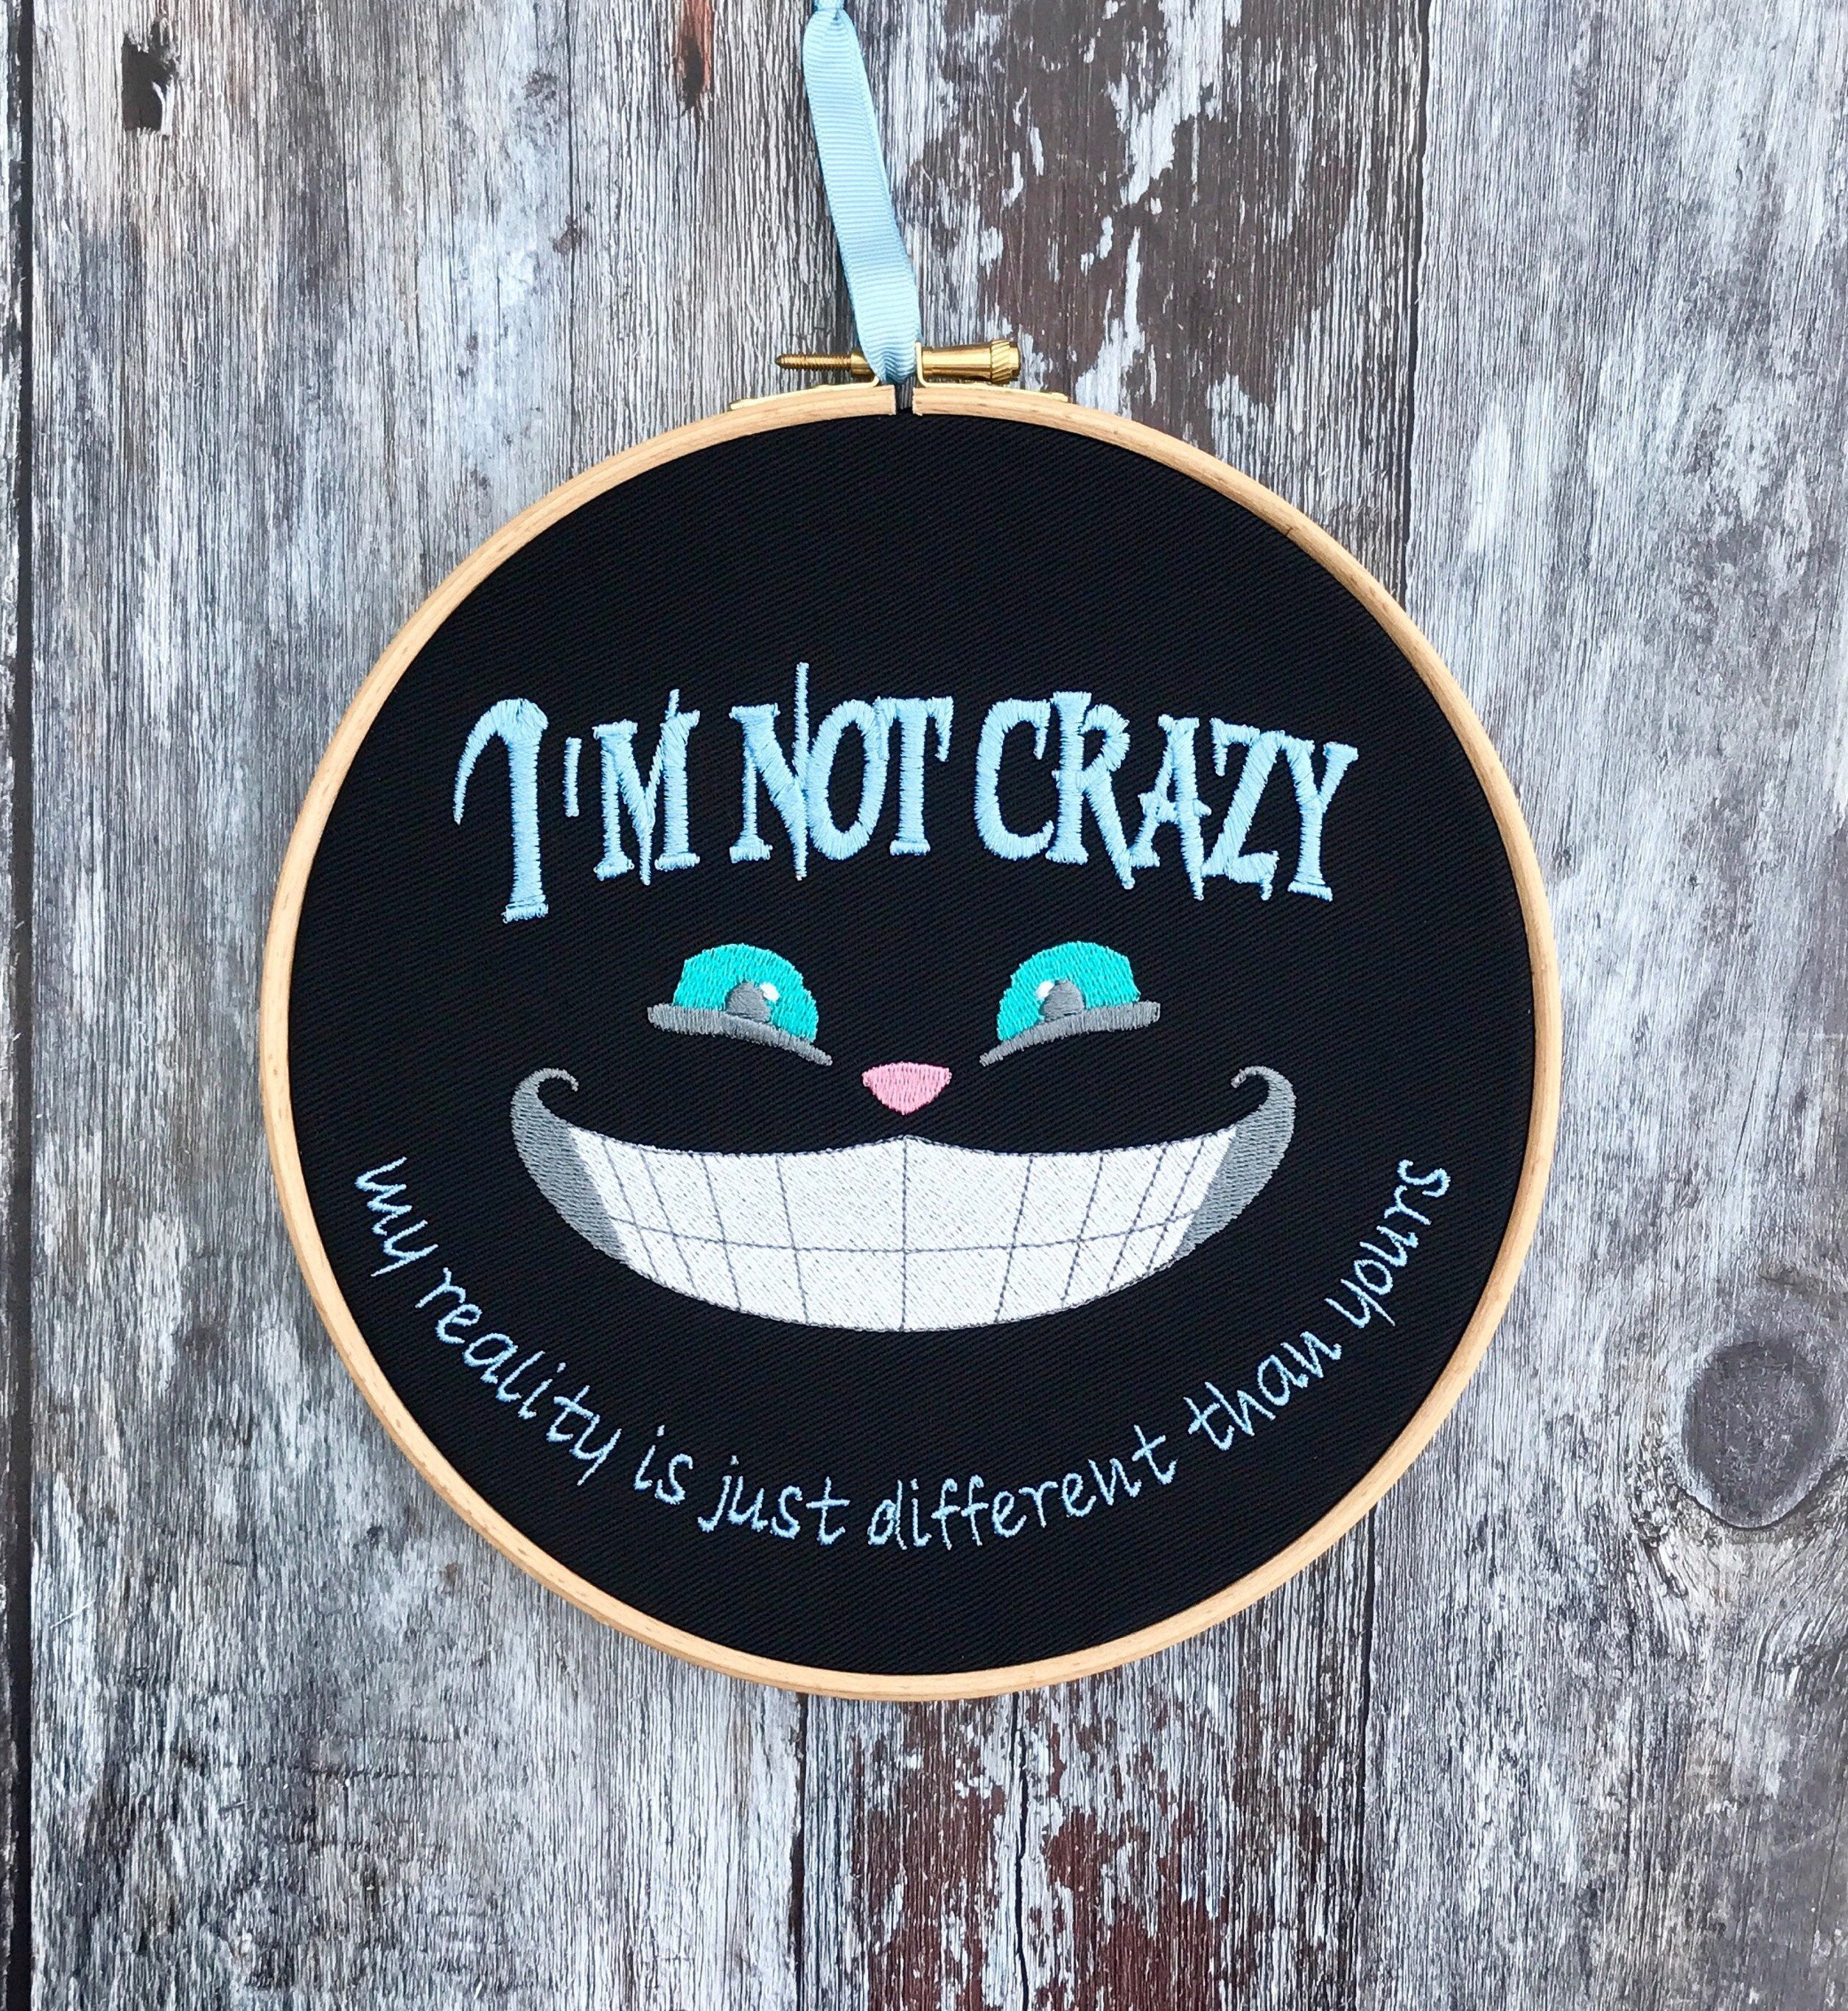 Im not crazy, Cheshire Cat quote, Embroidery hoop art Alice in Wonderland